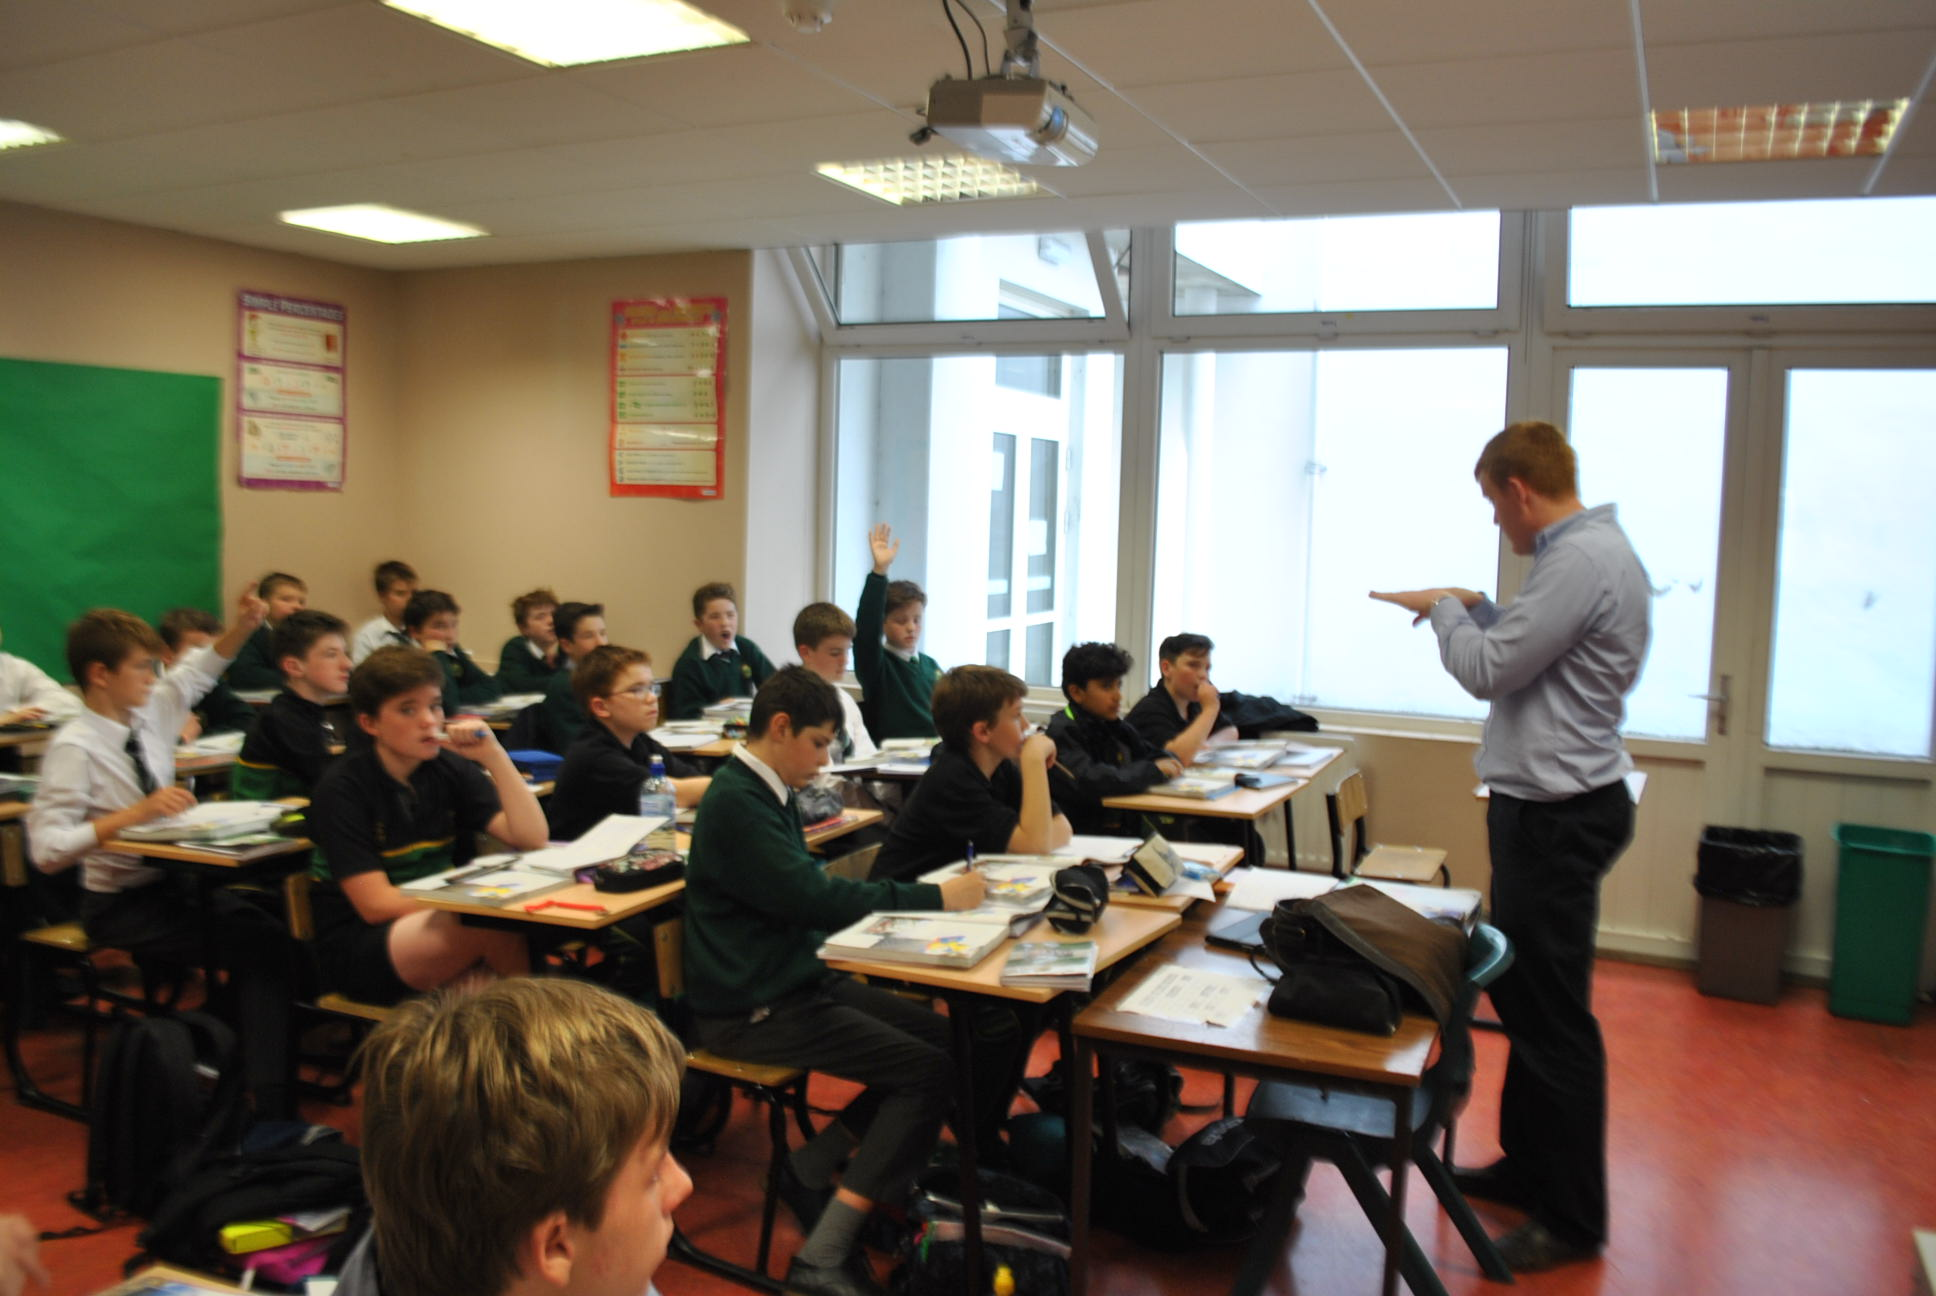 Geography with Mr. Lonergan